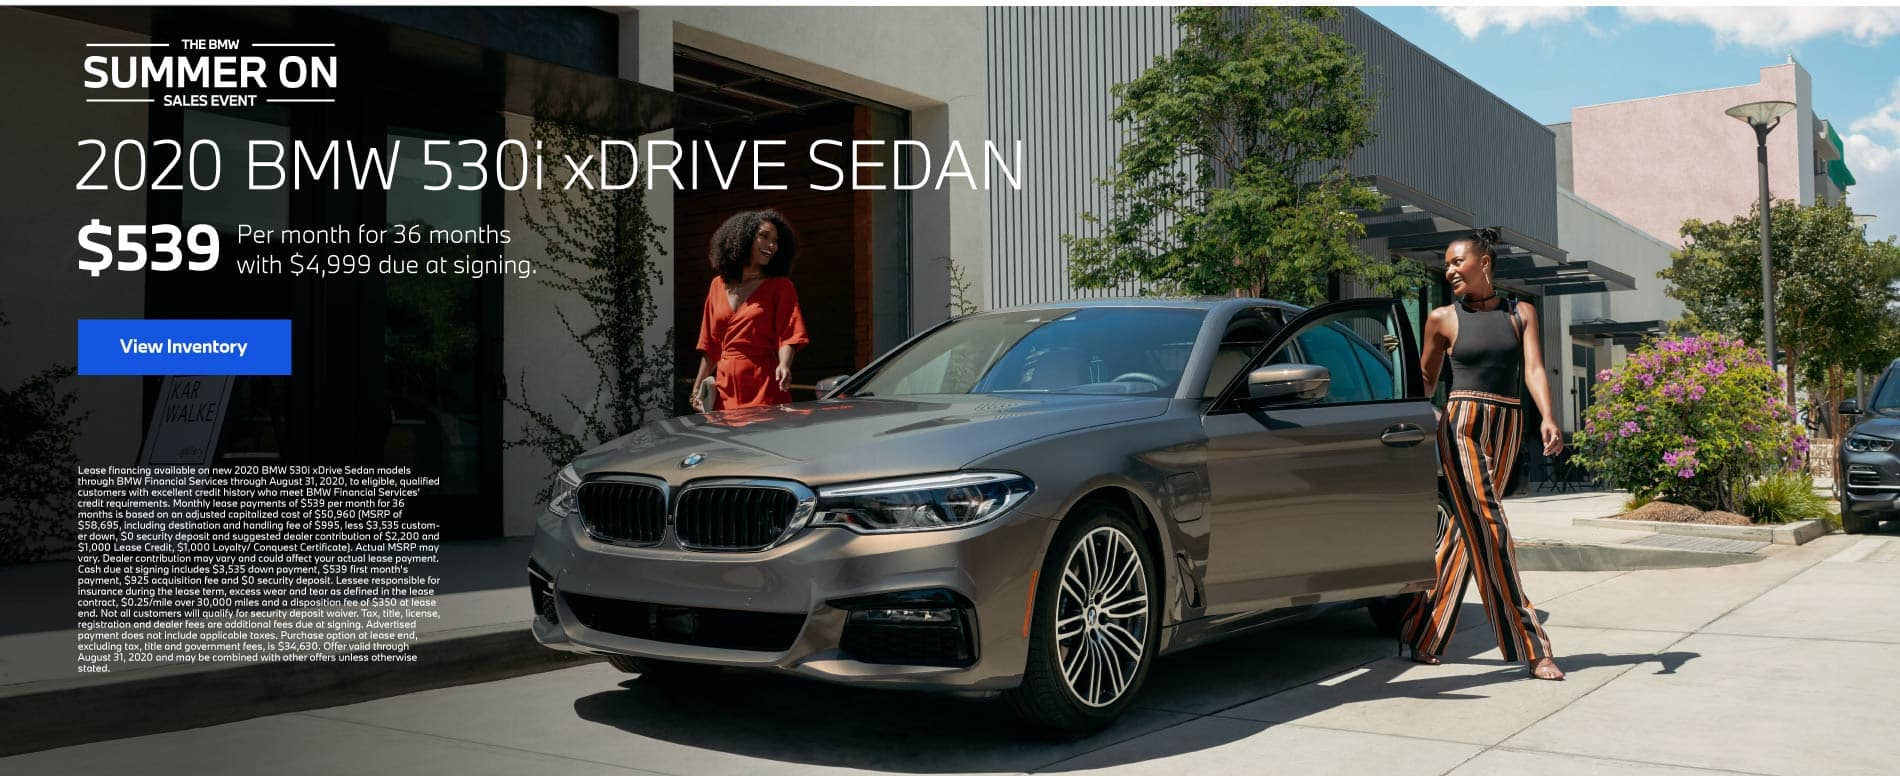 2020 BMW 530i xDrive Sedan $539 a month for 36 months | Offer Details